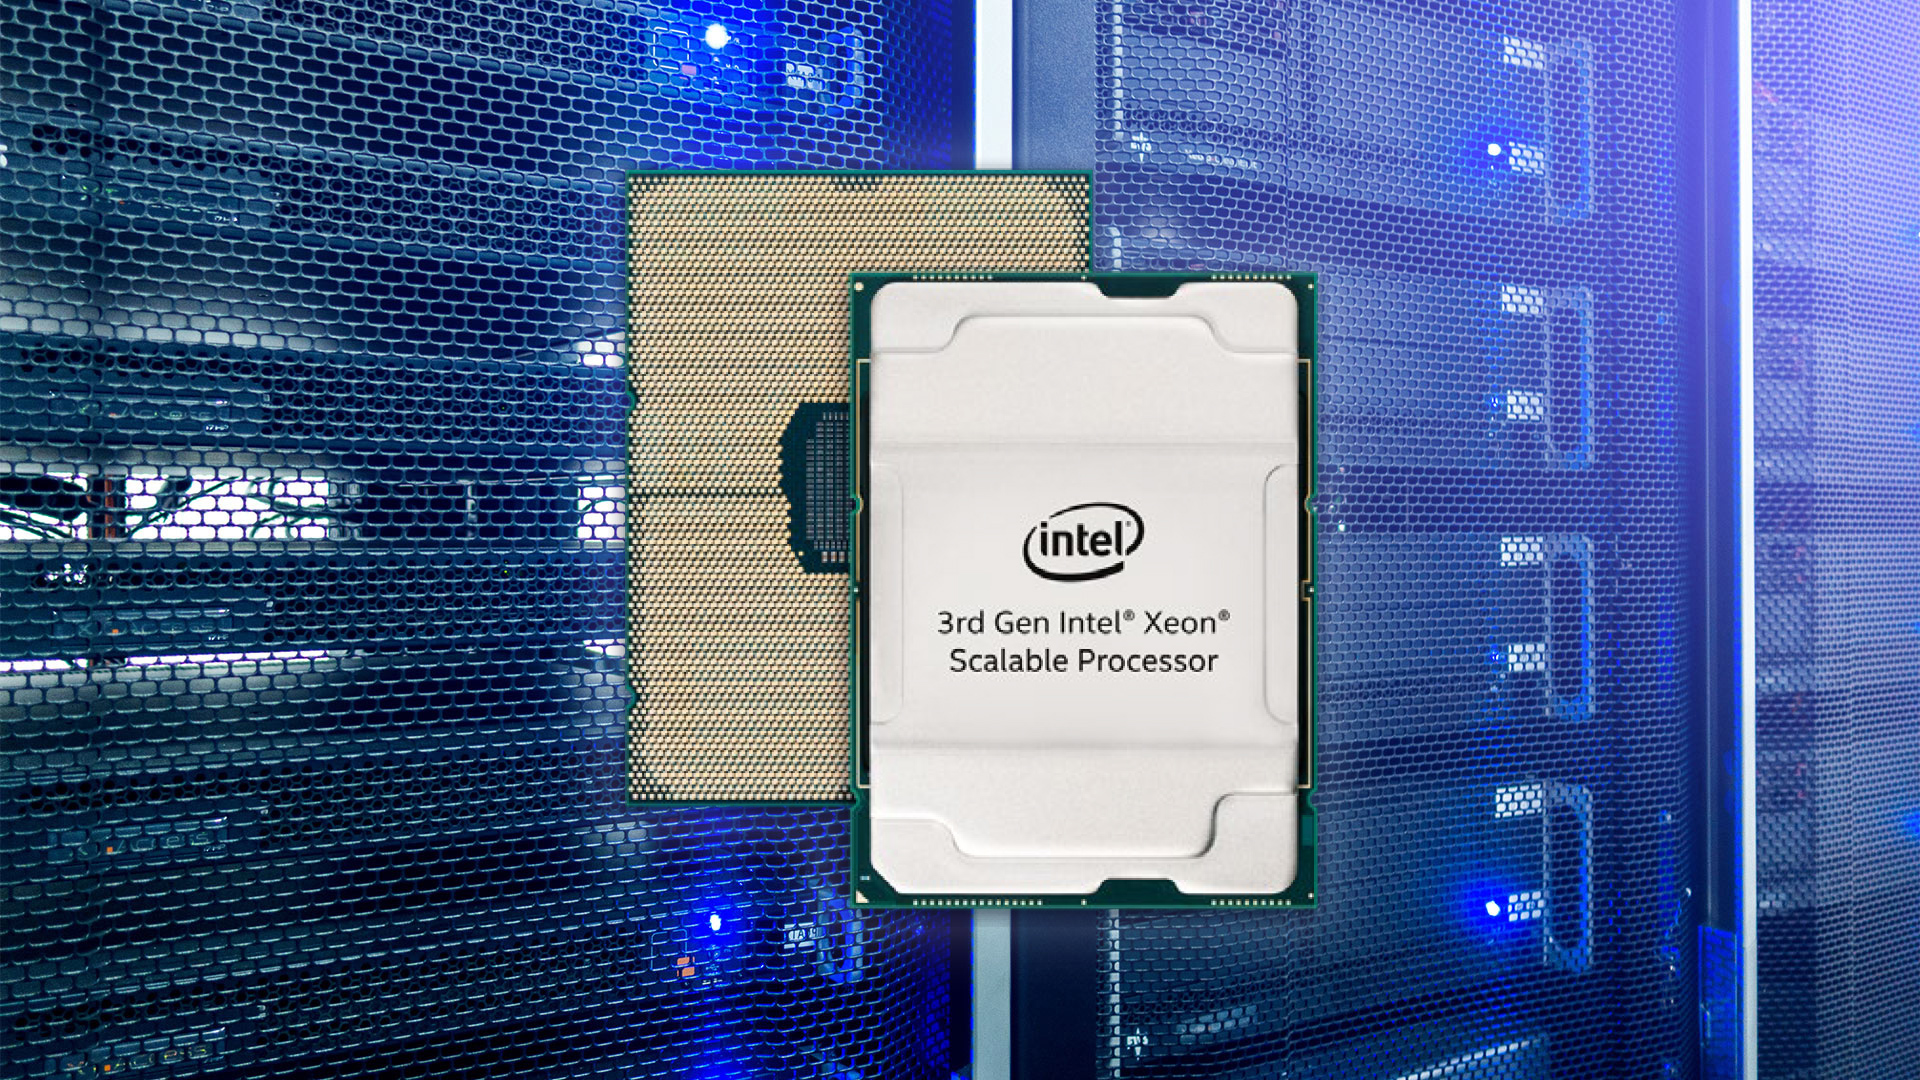 Intel-3rd-Gen-Xeon-Scalable-4